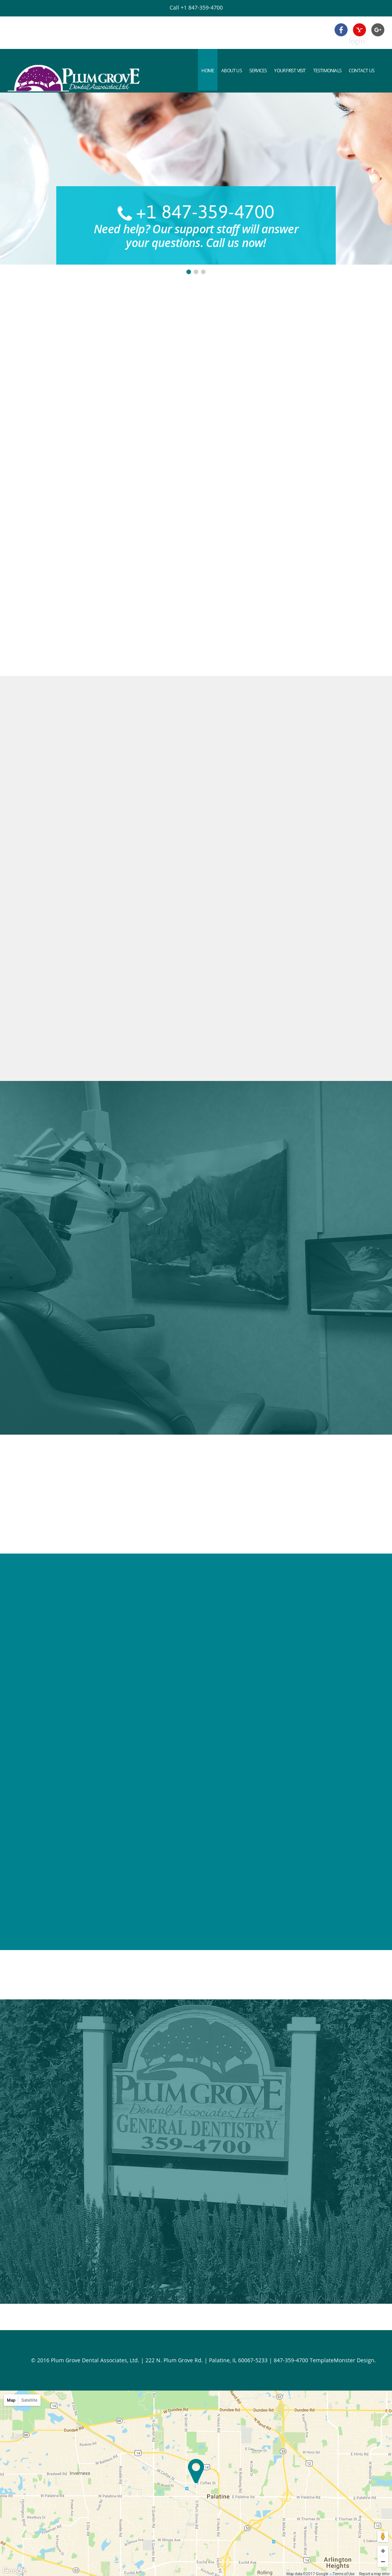 Plumgrovedental Competitors Revenue And Employees Owler Company Profile